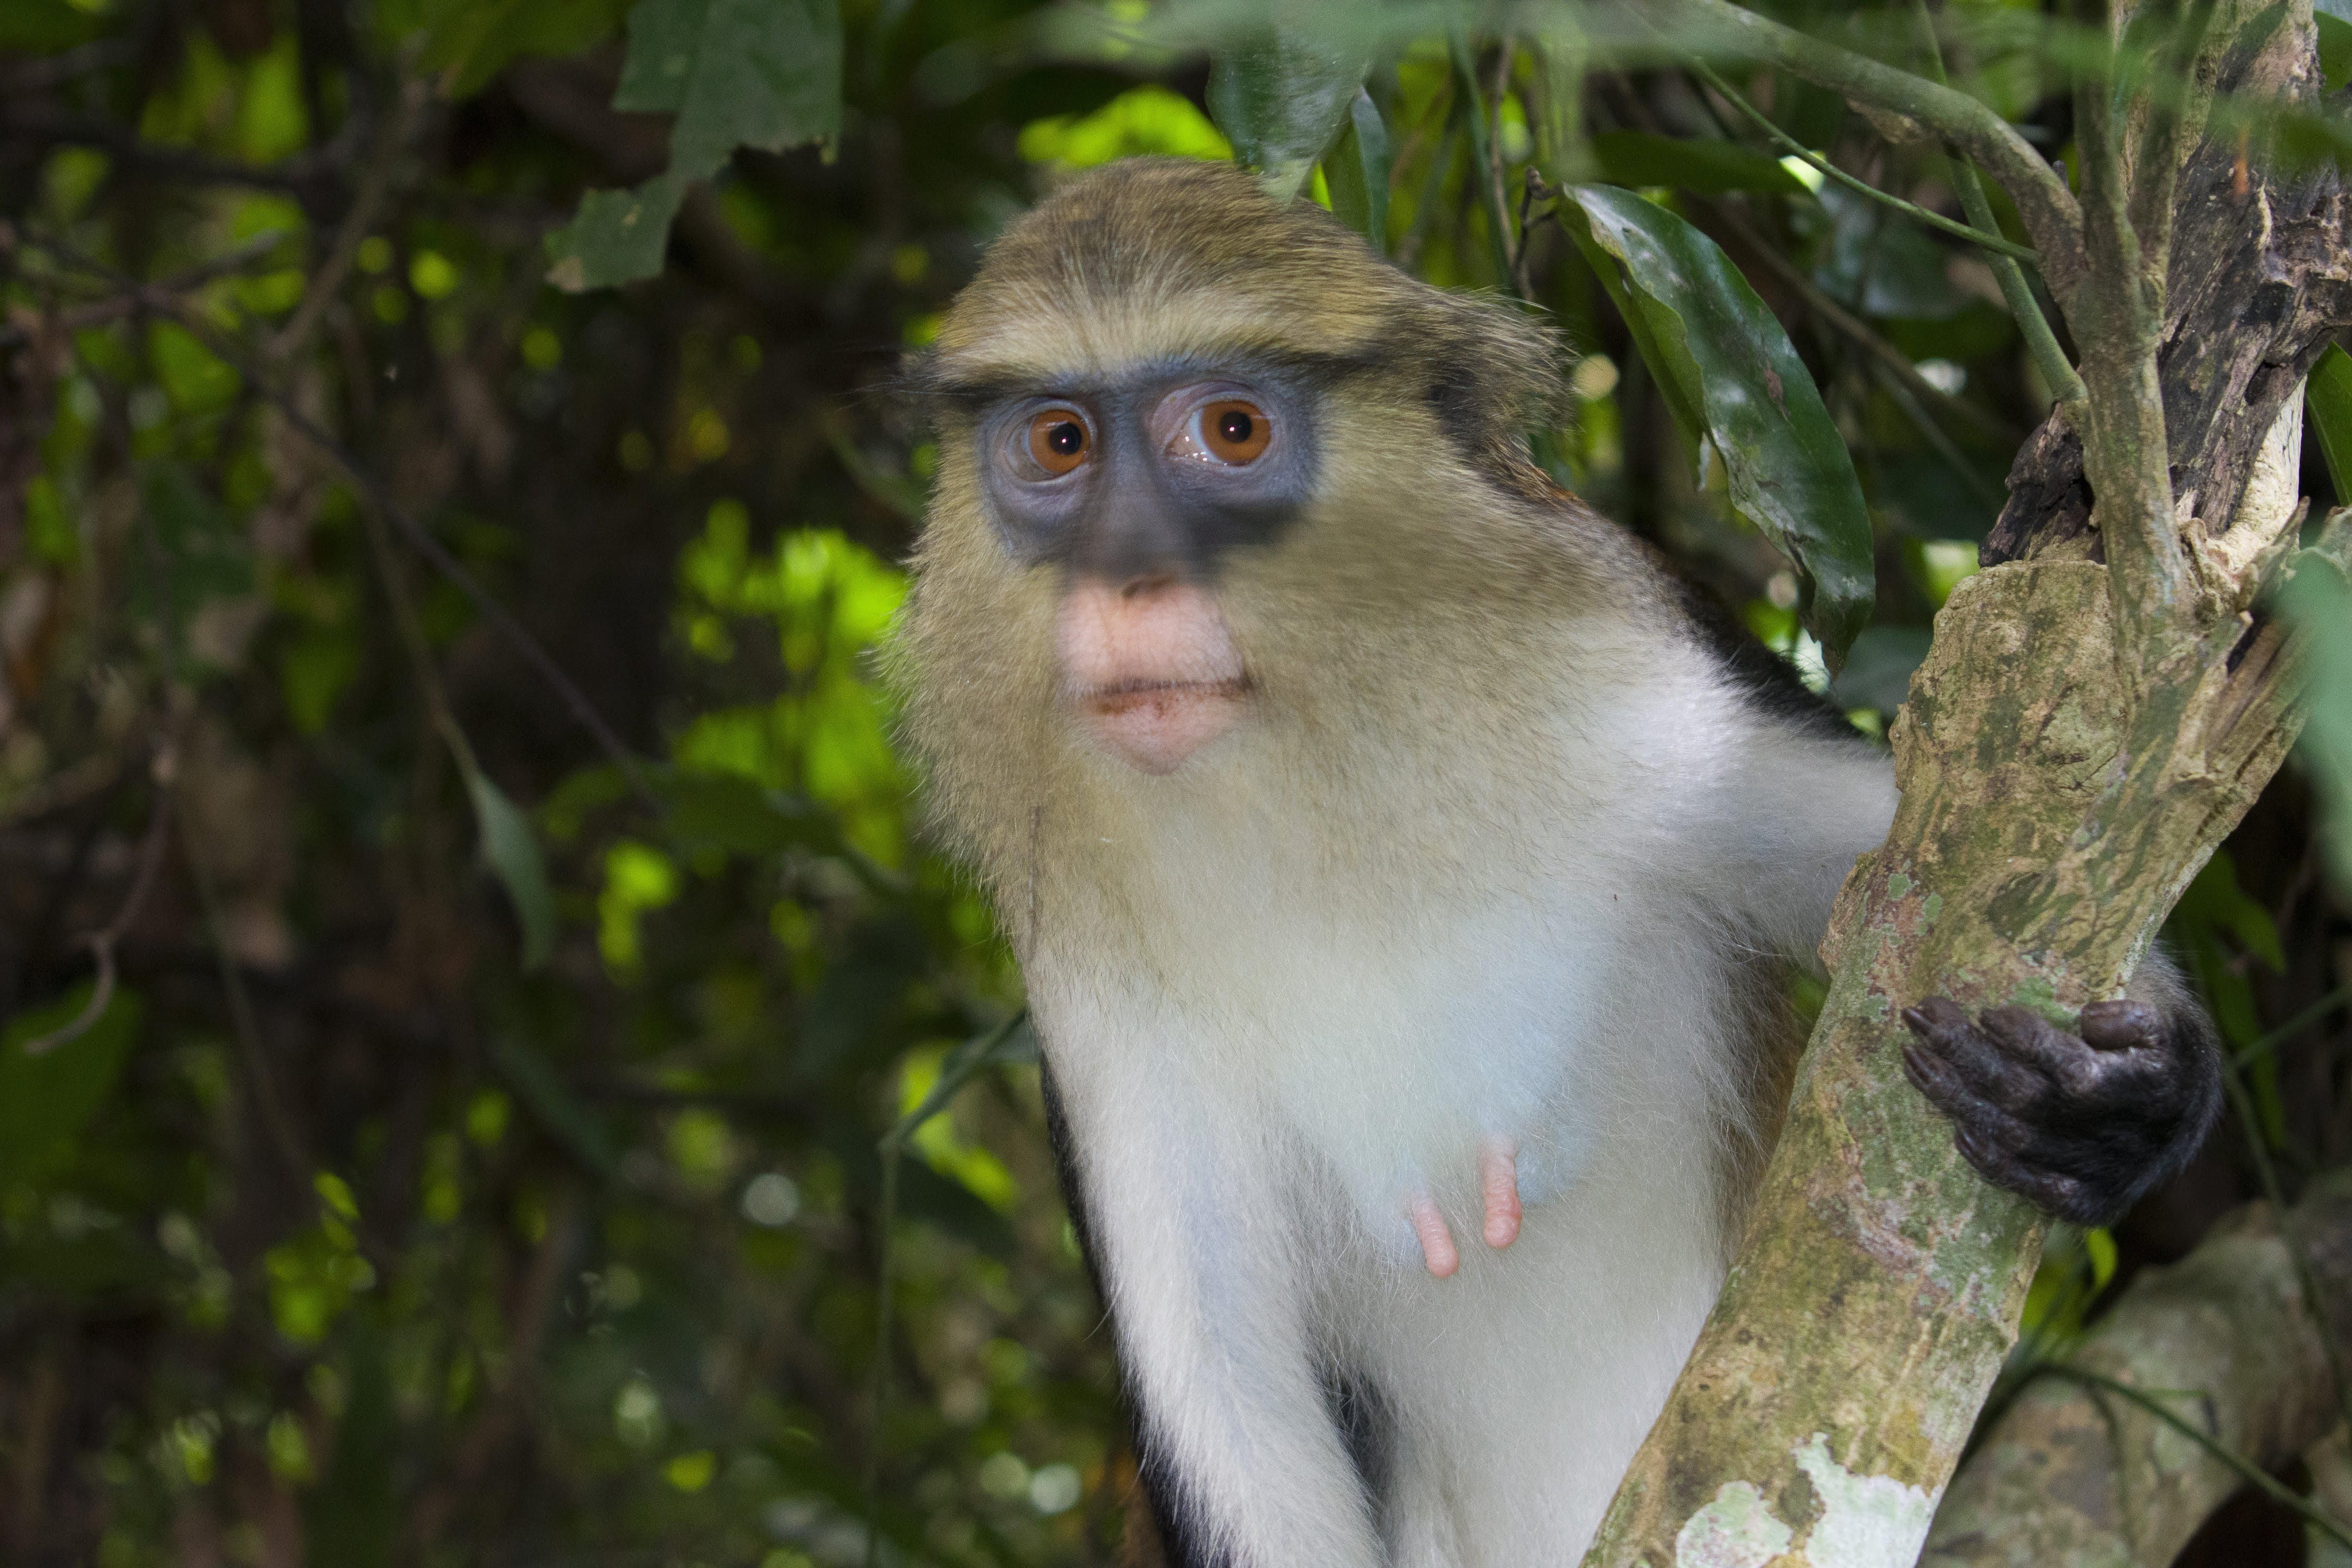 ITAP of a Mona monkey at the Tafi Monkey Sanctuary in Ghana.#PHOTO #CAPTURE #NATURE #INCREDIBLE